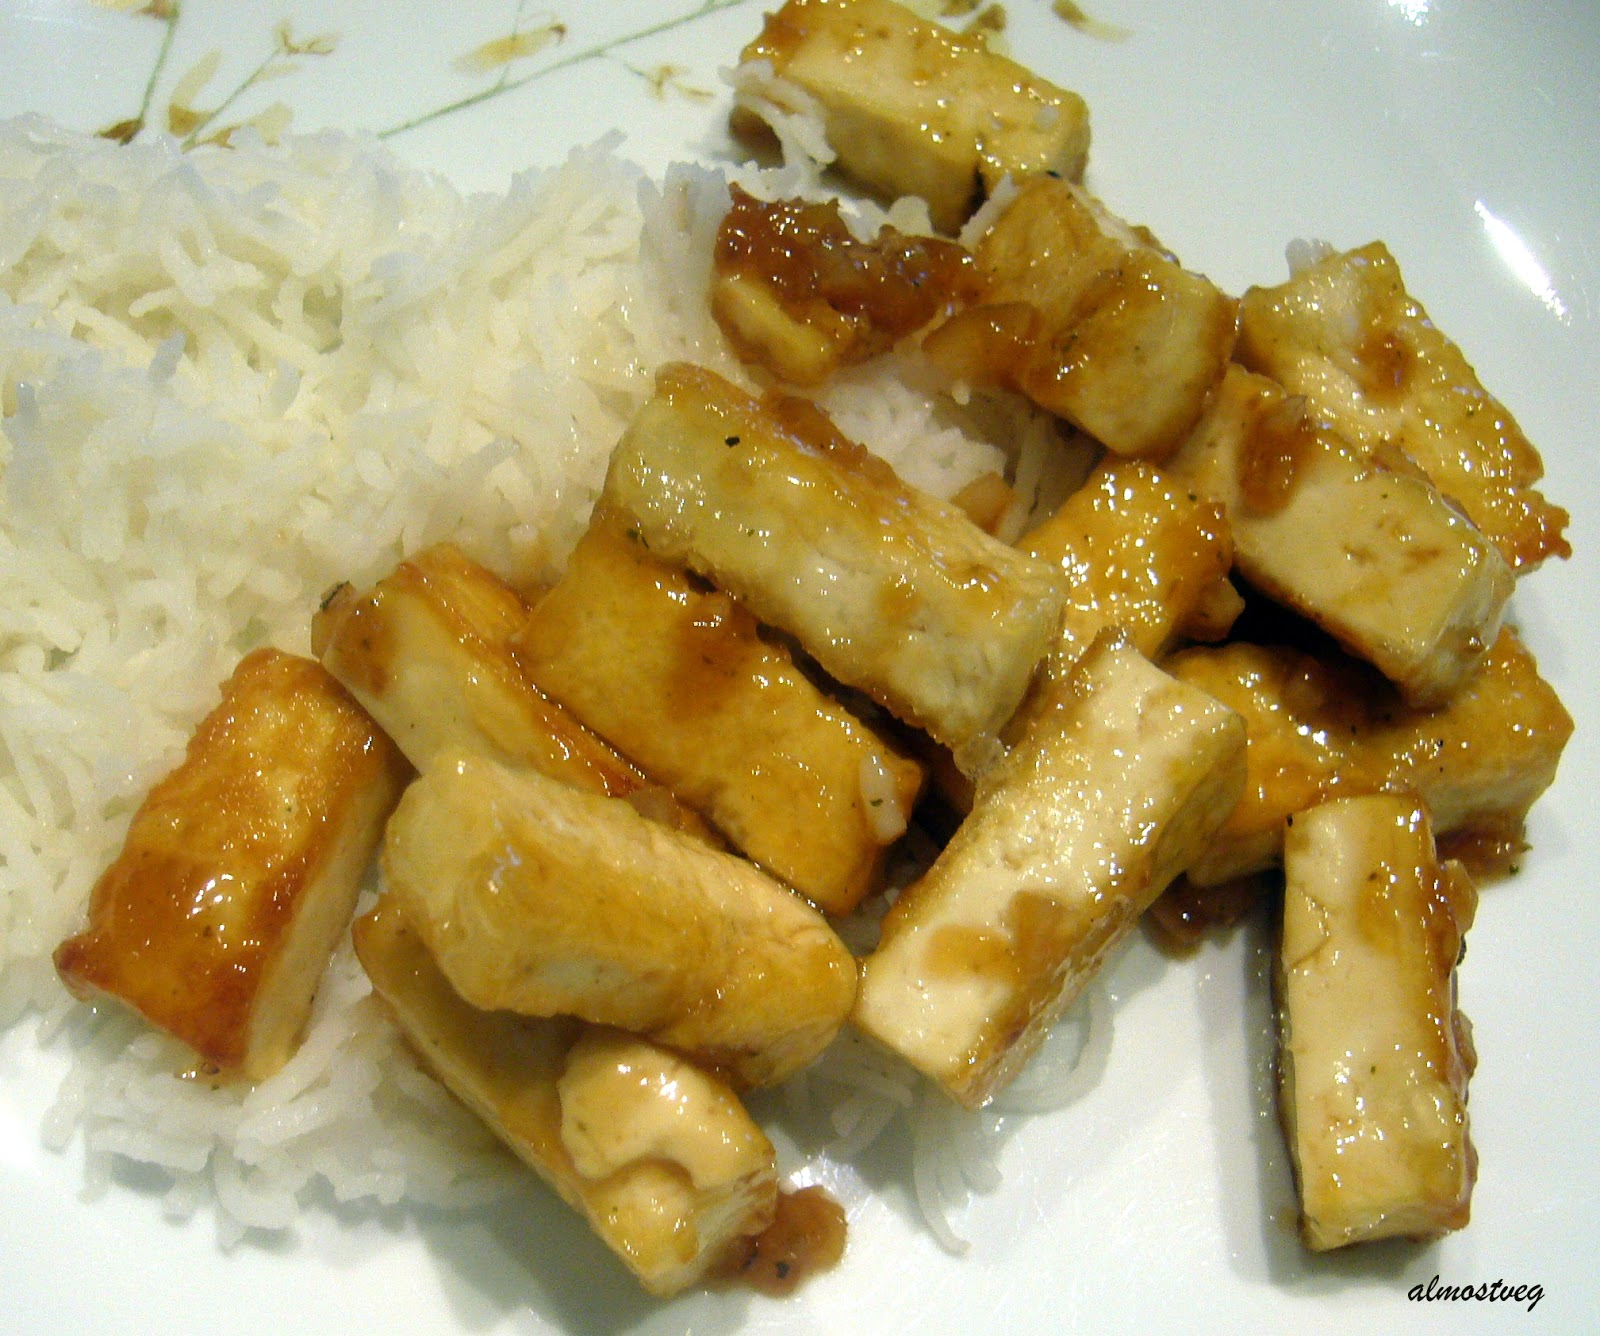 almostveg: Pan fried tofu with a lemon soy glaze